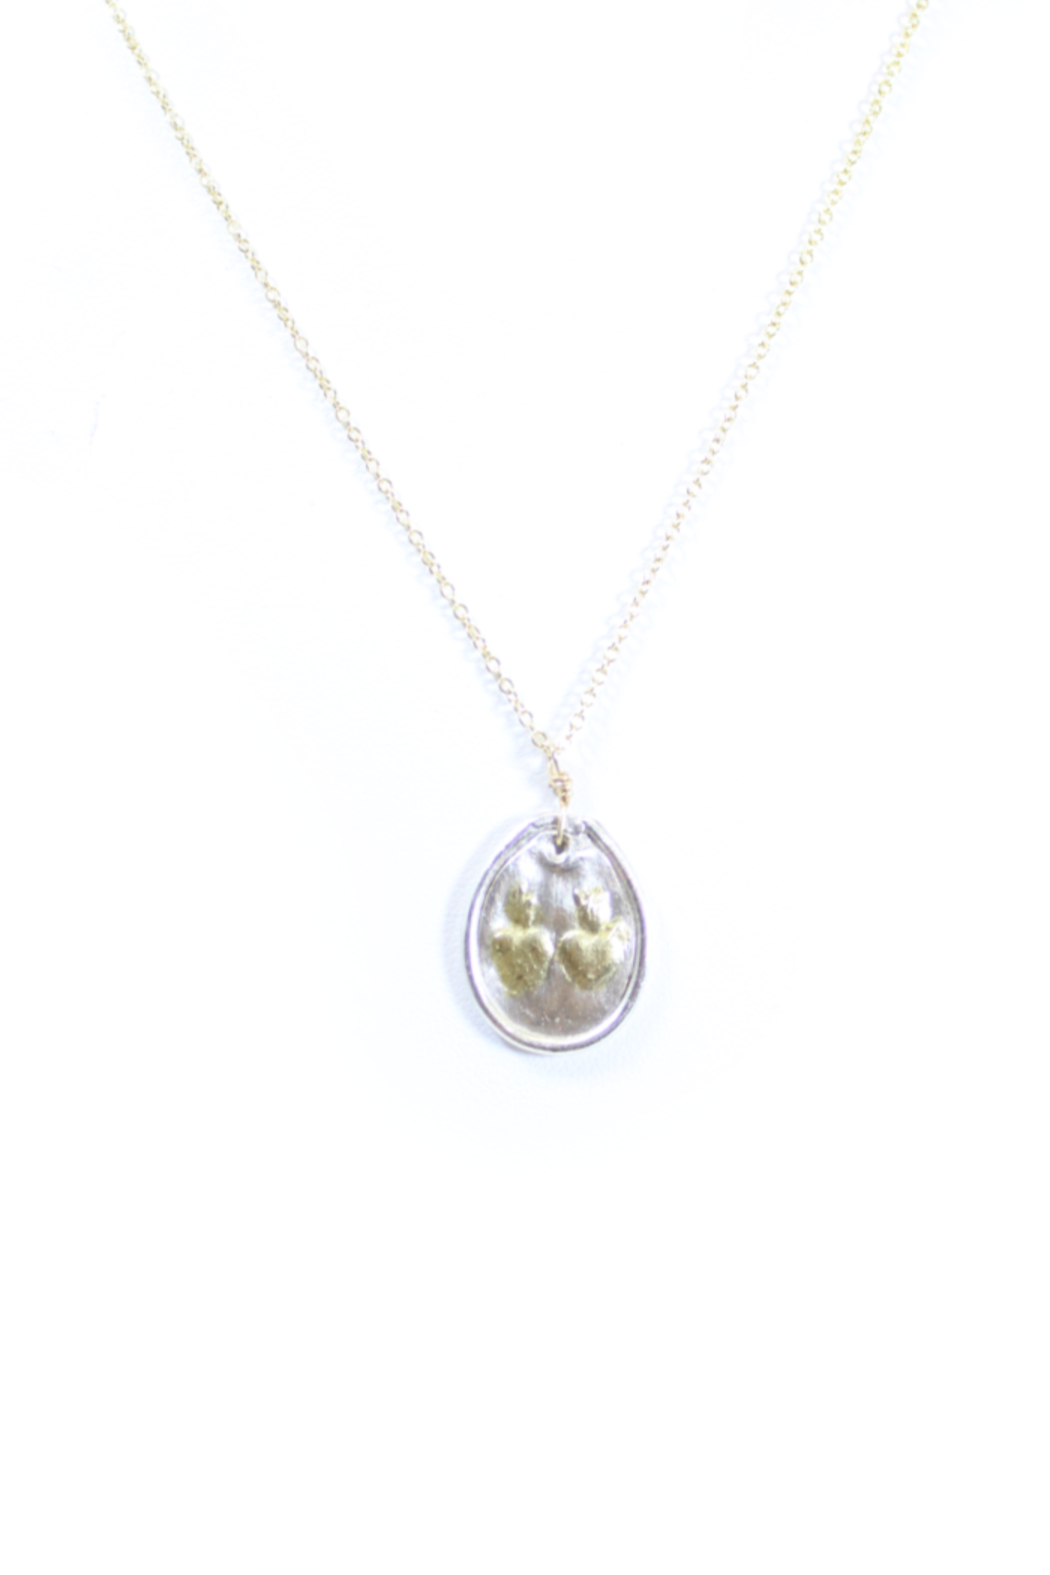 The Birds Nest HANDCRAFTED FINE SILVER OVAL SACRED HEART AND IMMACULATE HEART-16IN - Main Image